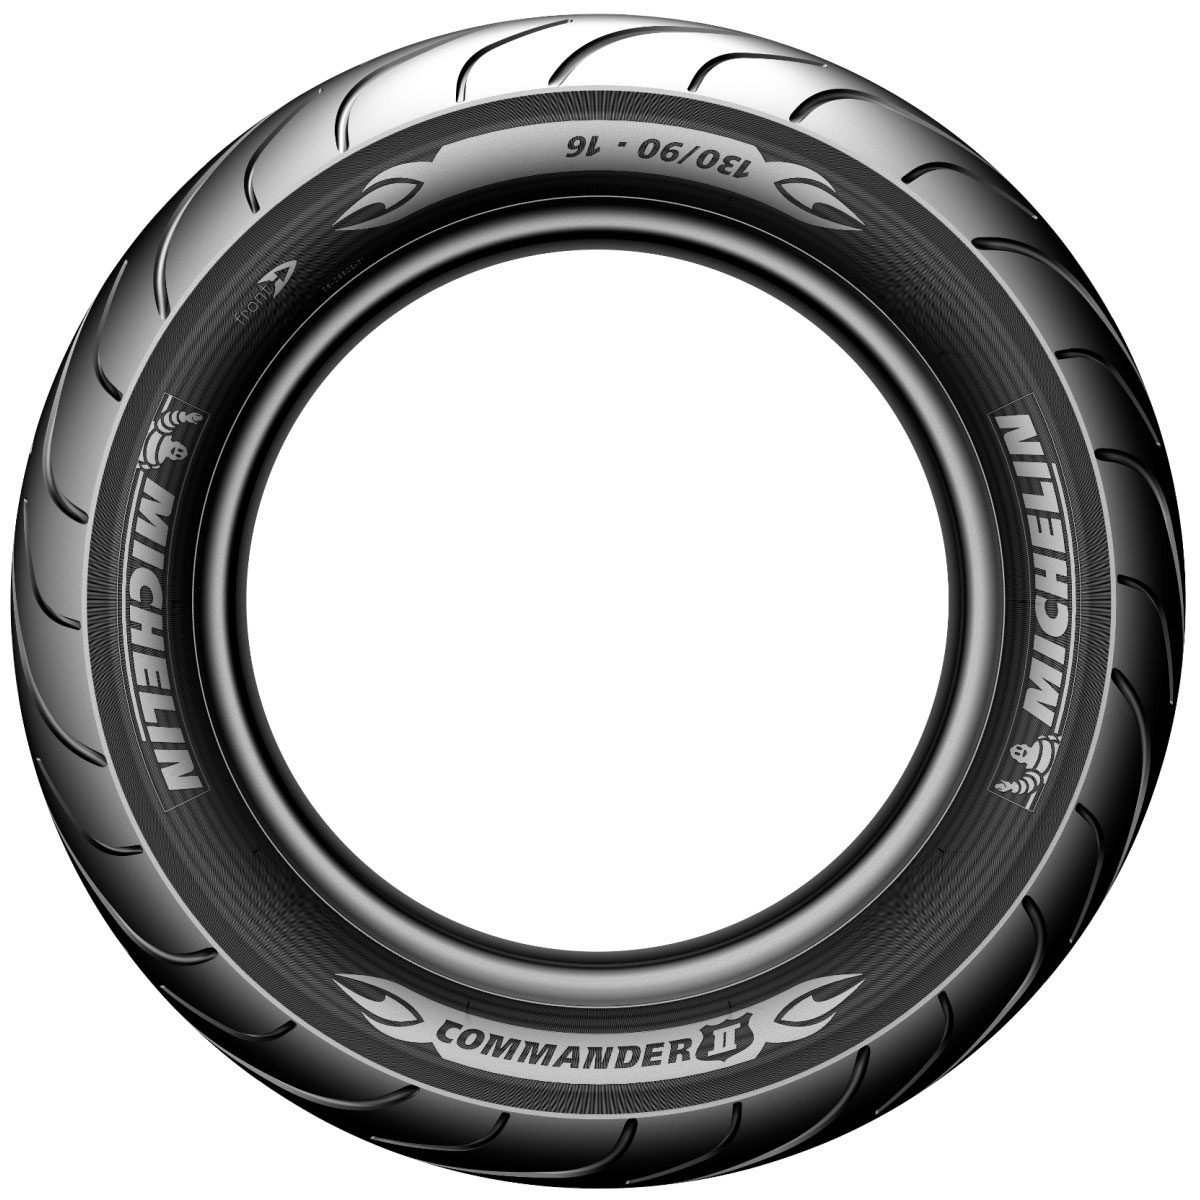 Racing Tire Clipart.